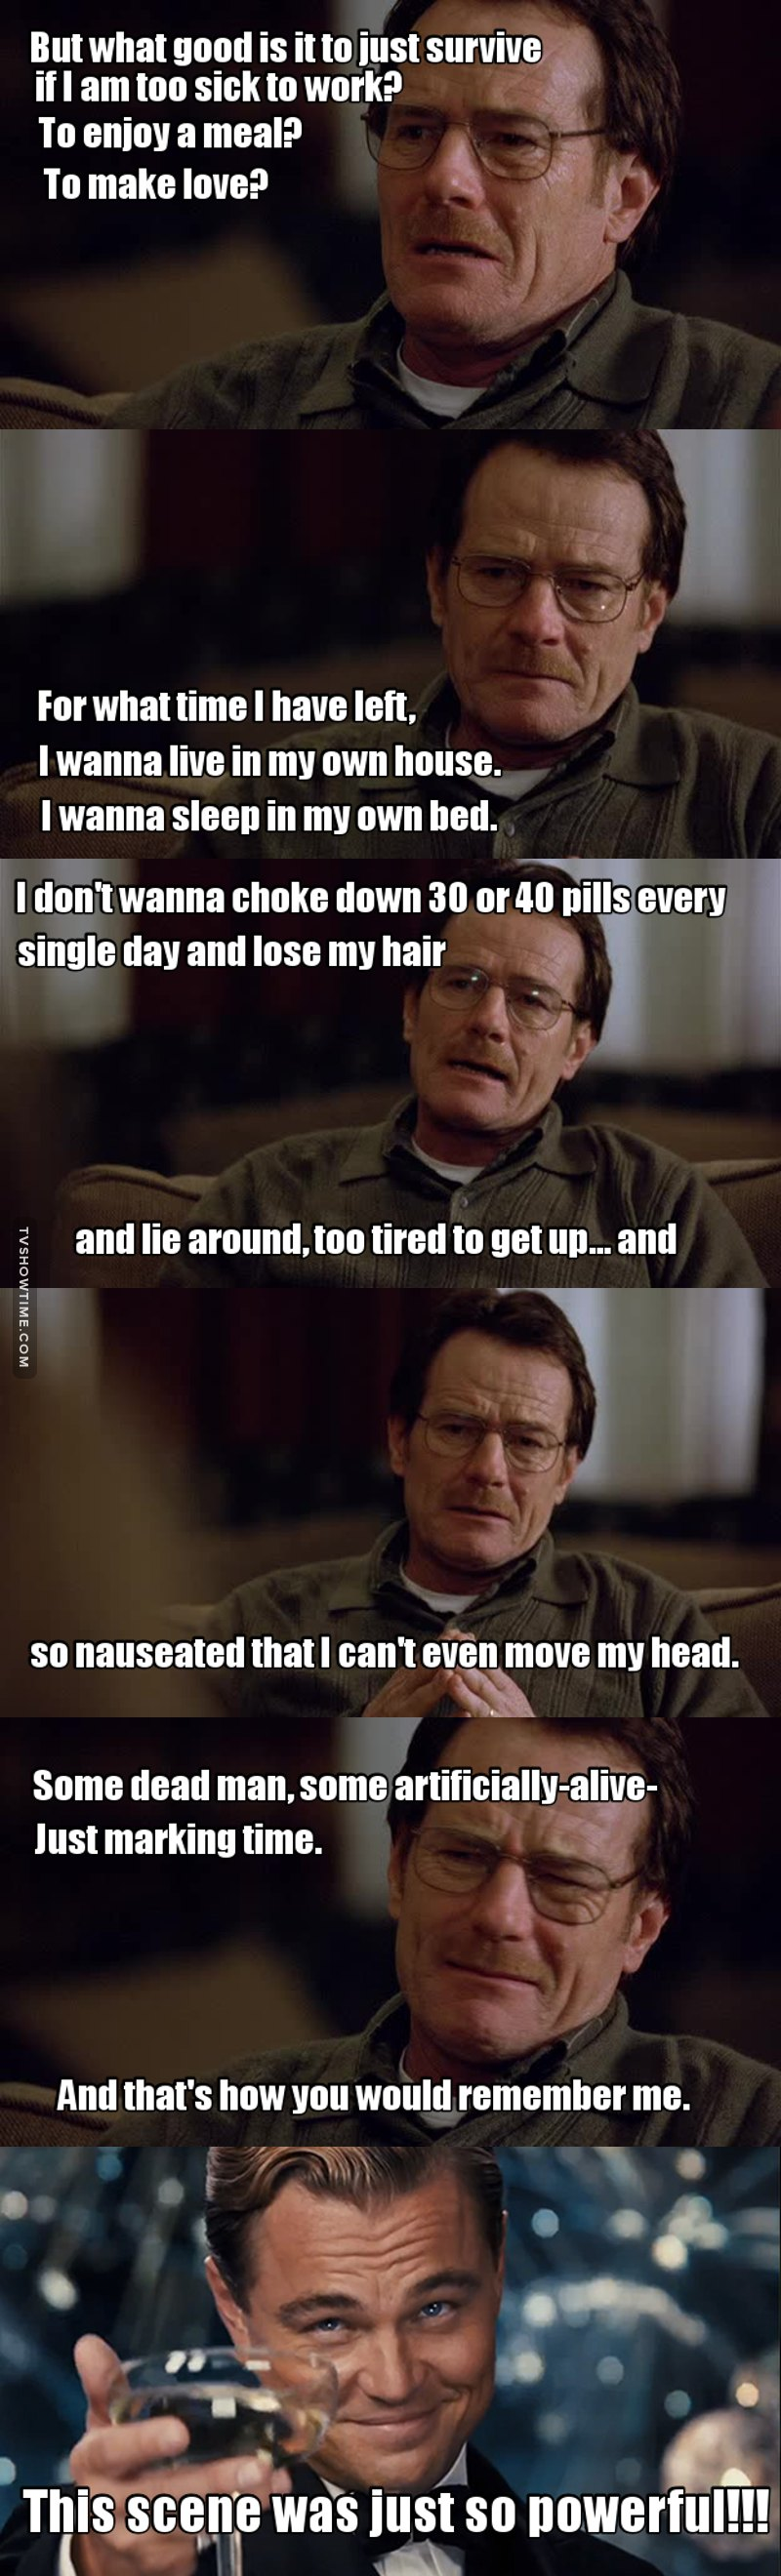 Bryan Cranston totally nailed this scene!!!!